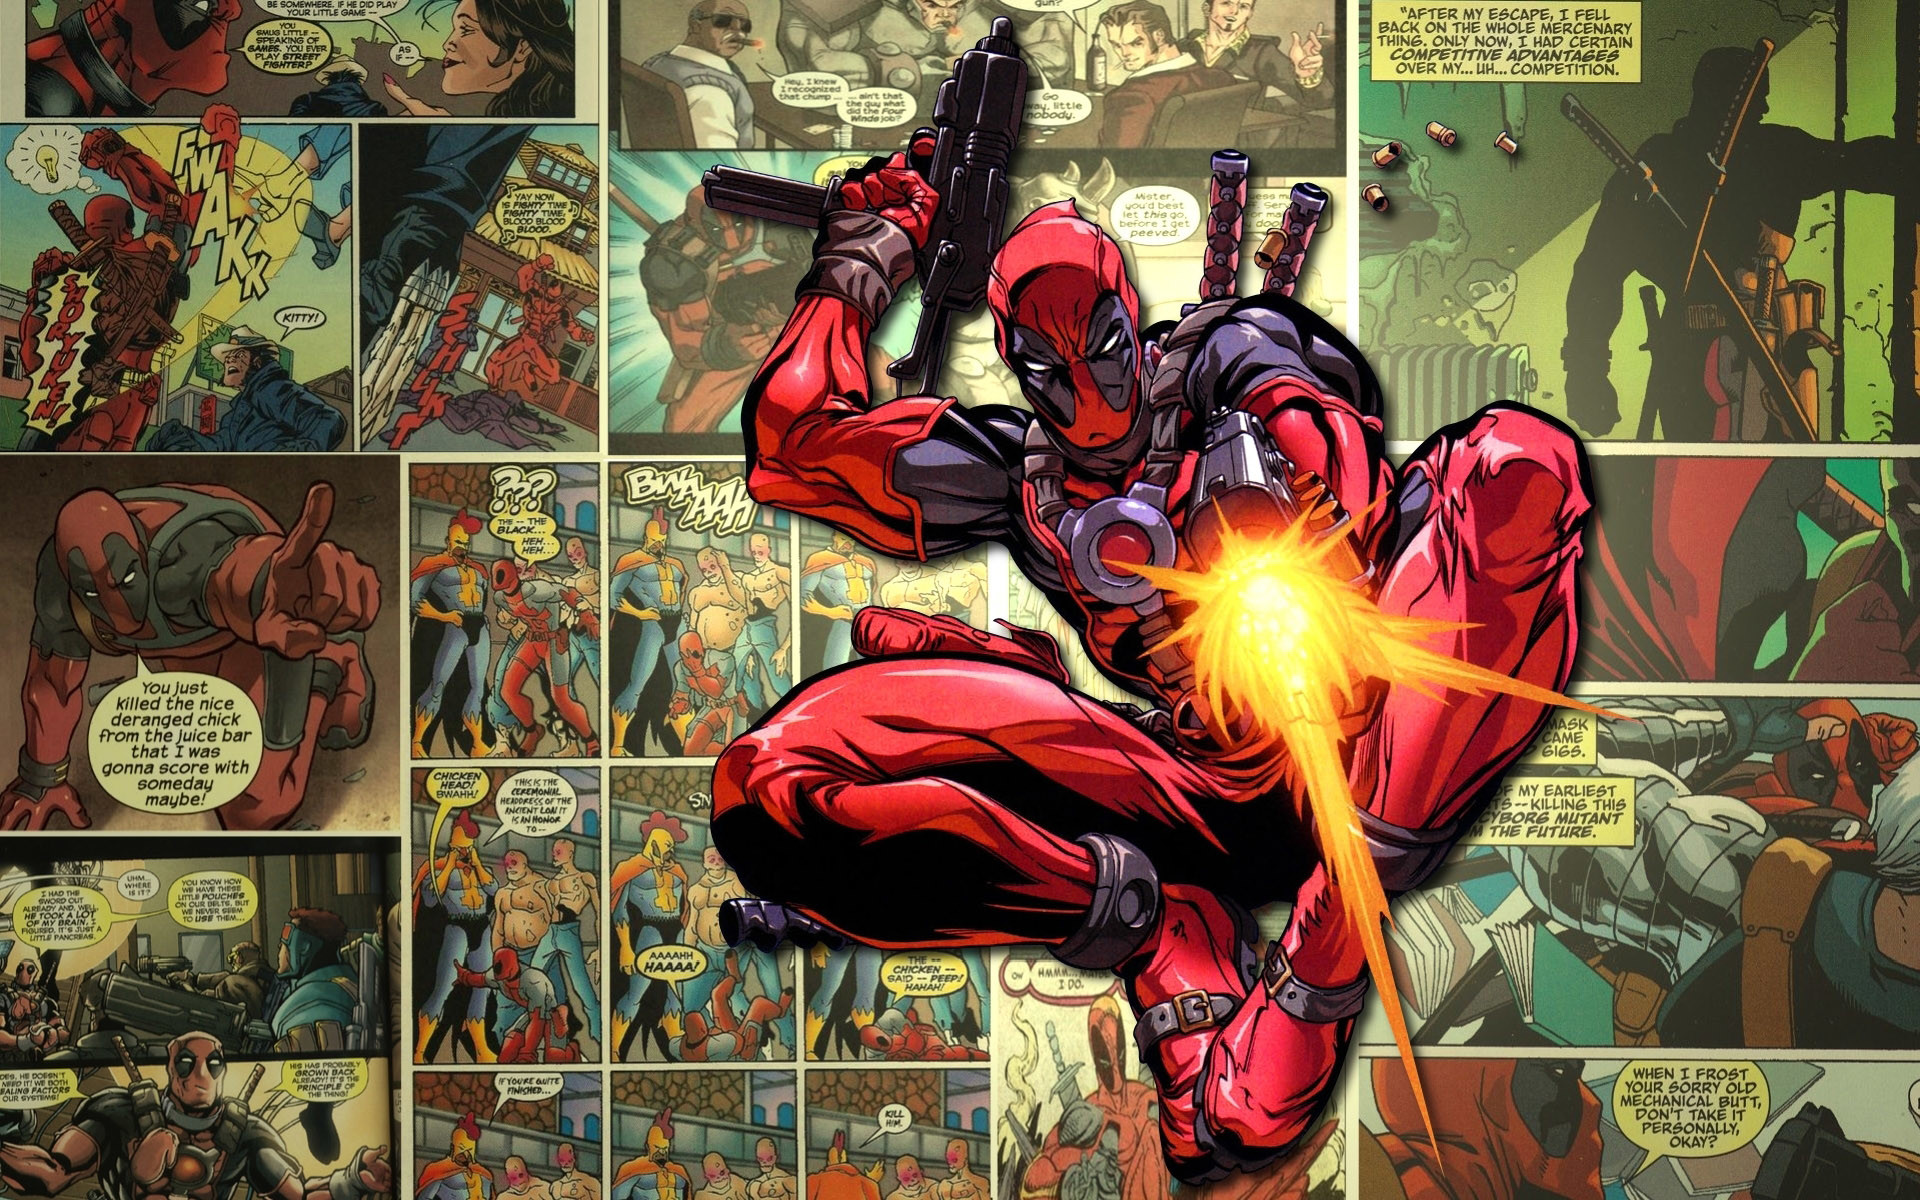 1920x1200 Cool Apple Mac Desktop Wallpapers HD With Comic Book Superhero Mac .